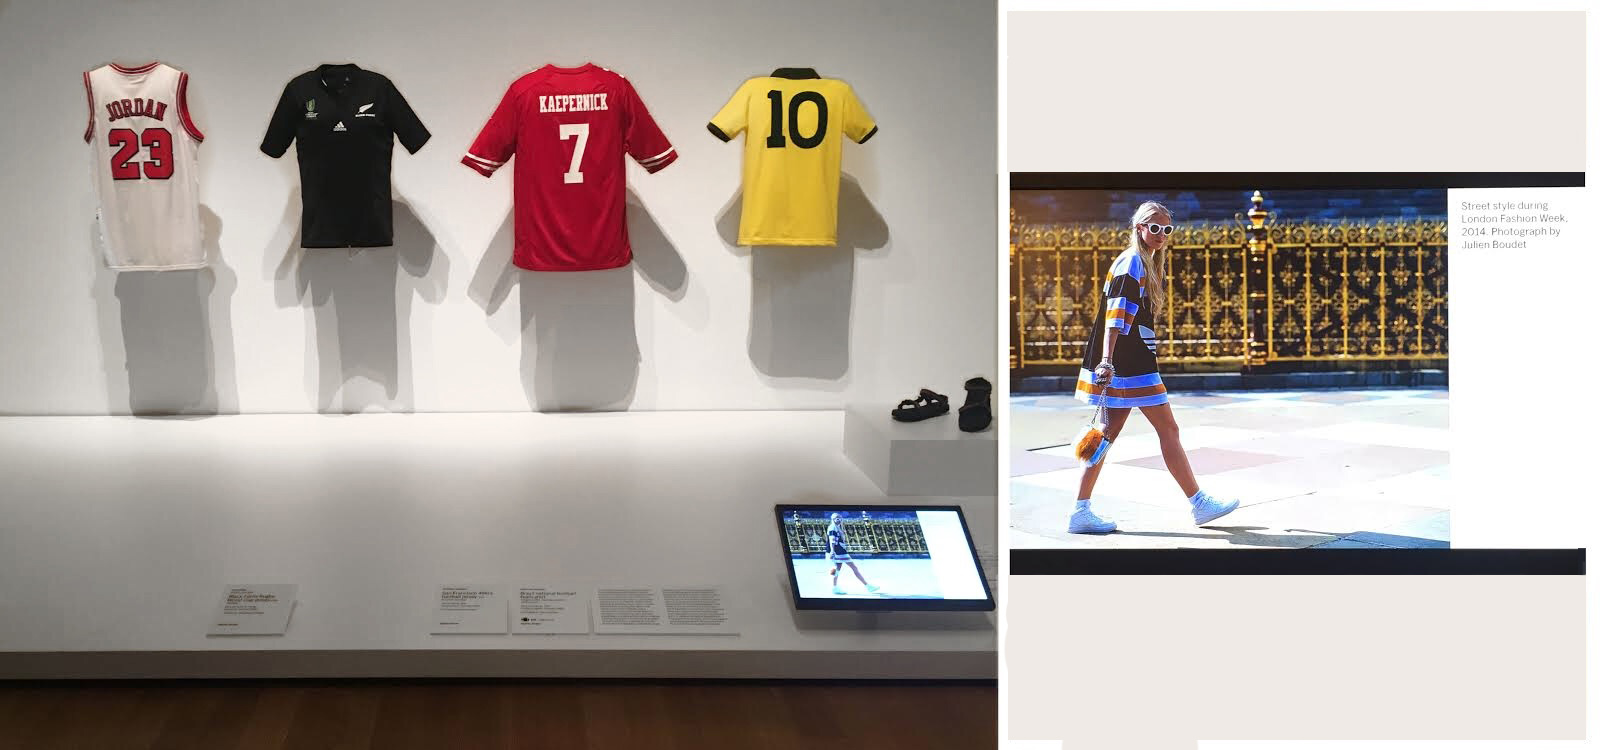 """bleu at MoMa, NYC  julien's picture has been selected to illustrate the exhibition """"Items: Is Fashion Modern?"""""""